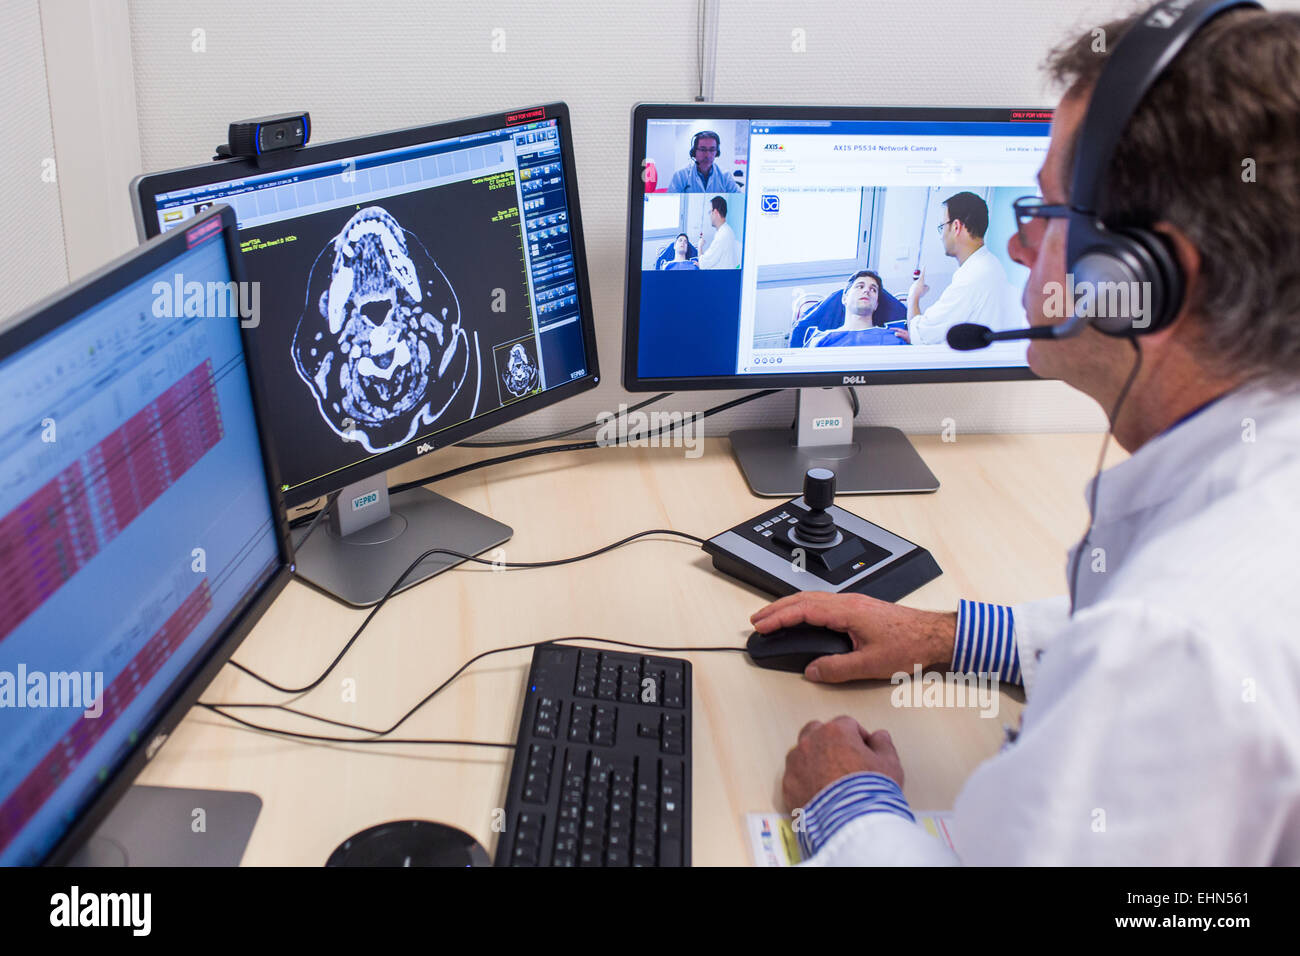 Treatment of a patient with symptoms of a stroke by an emergency physician at Blaye hospital and remote examination - Stock Image